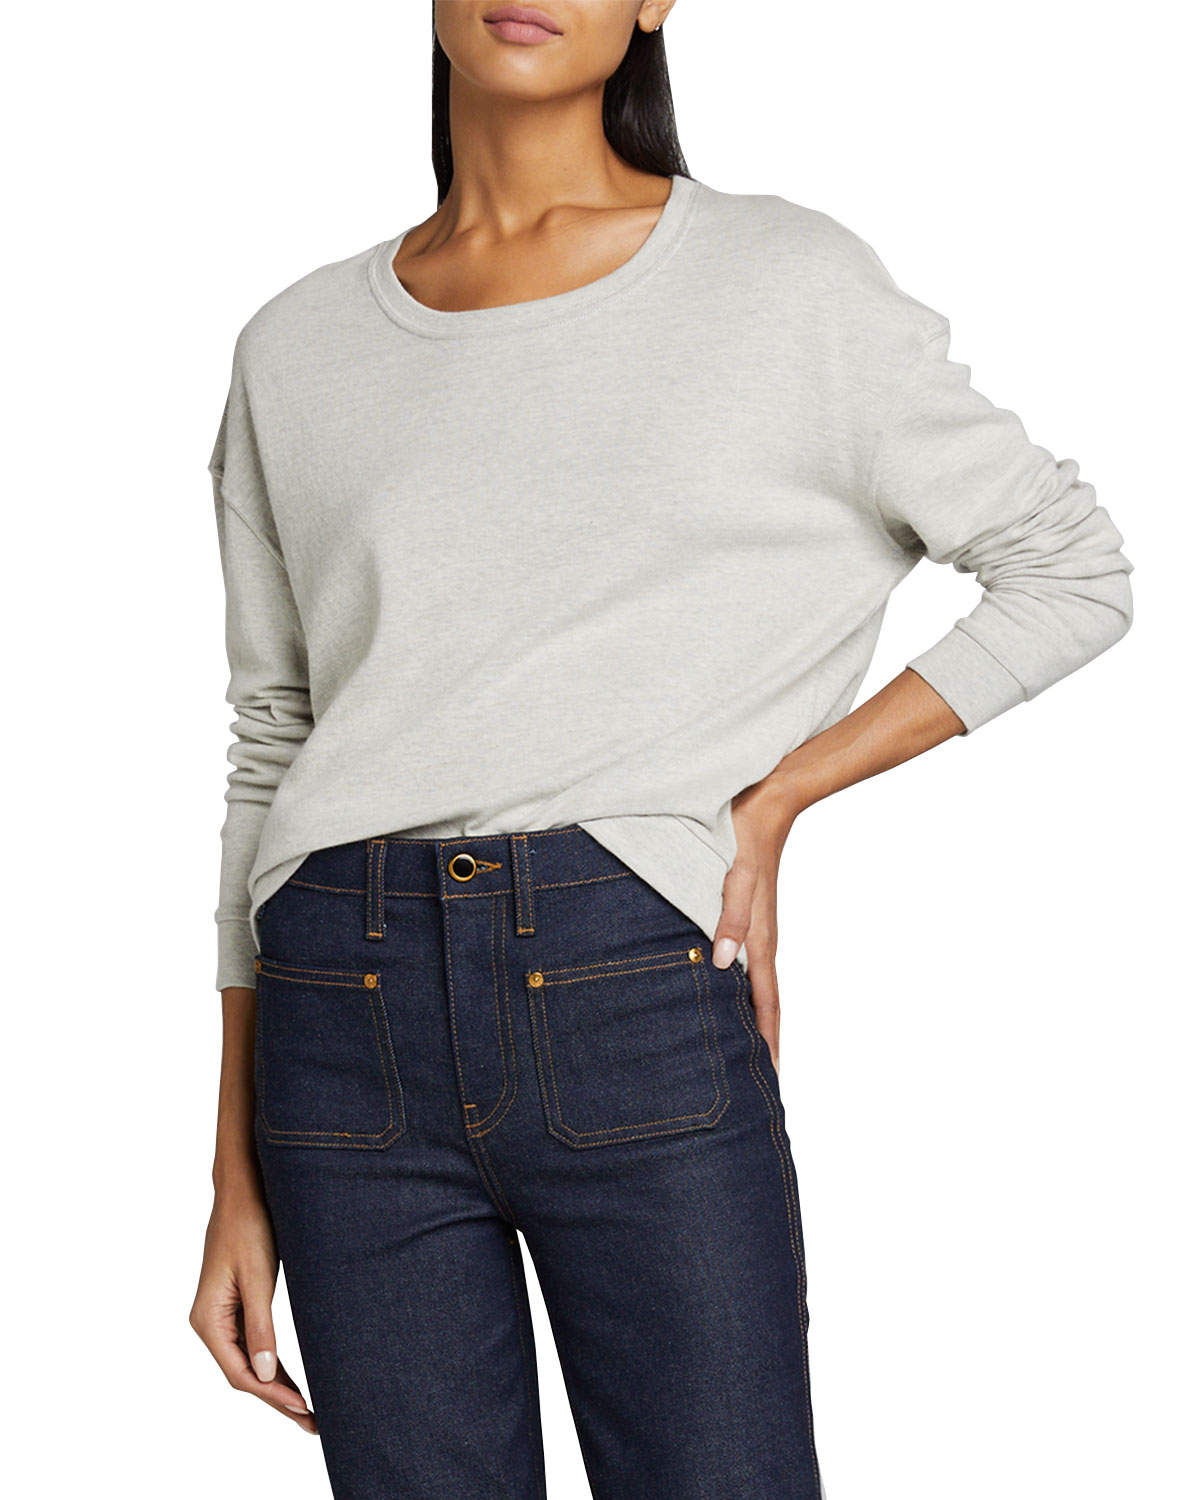 Majestic OVERSIZED PULLOVER SWEATER